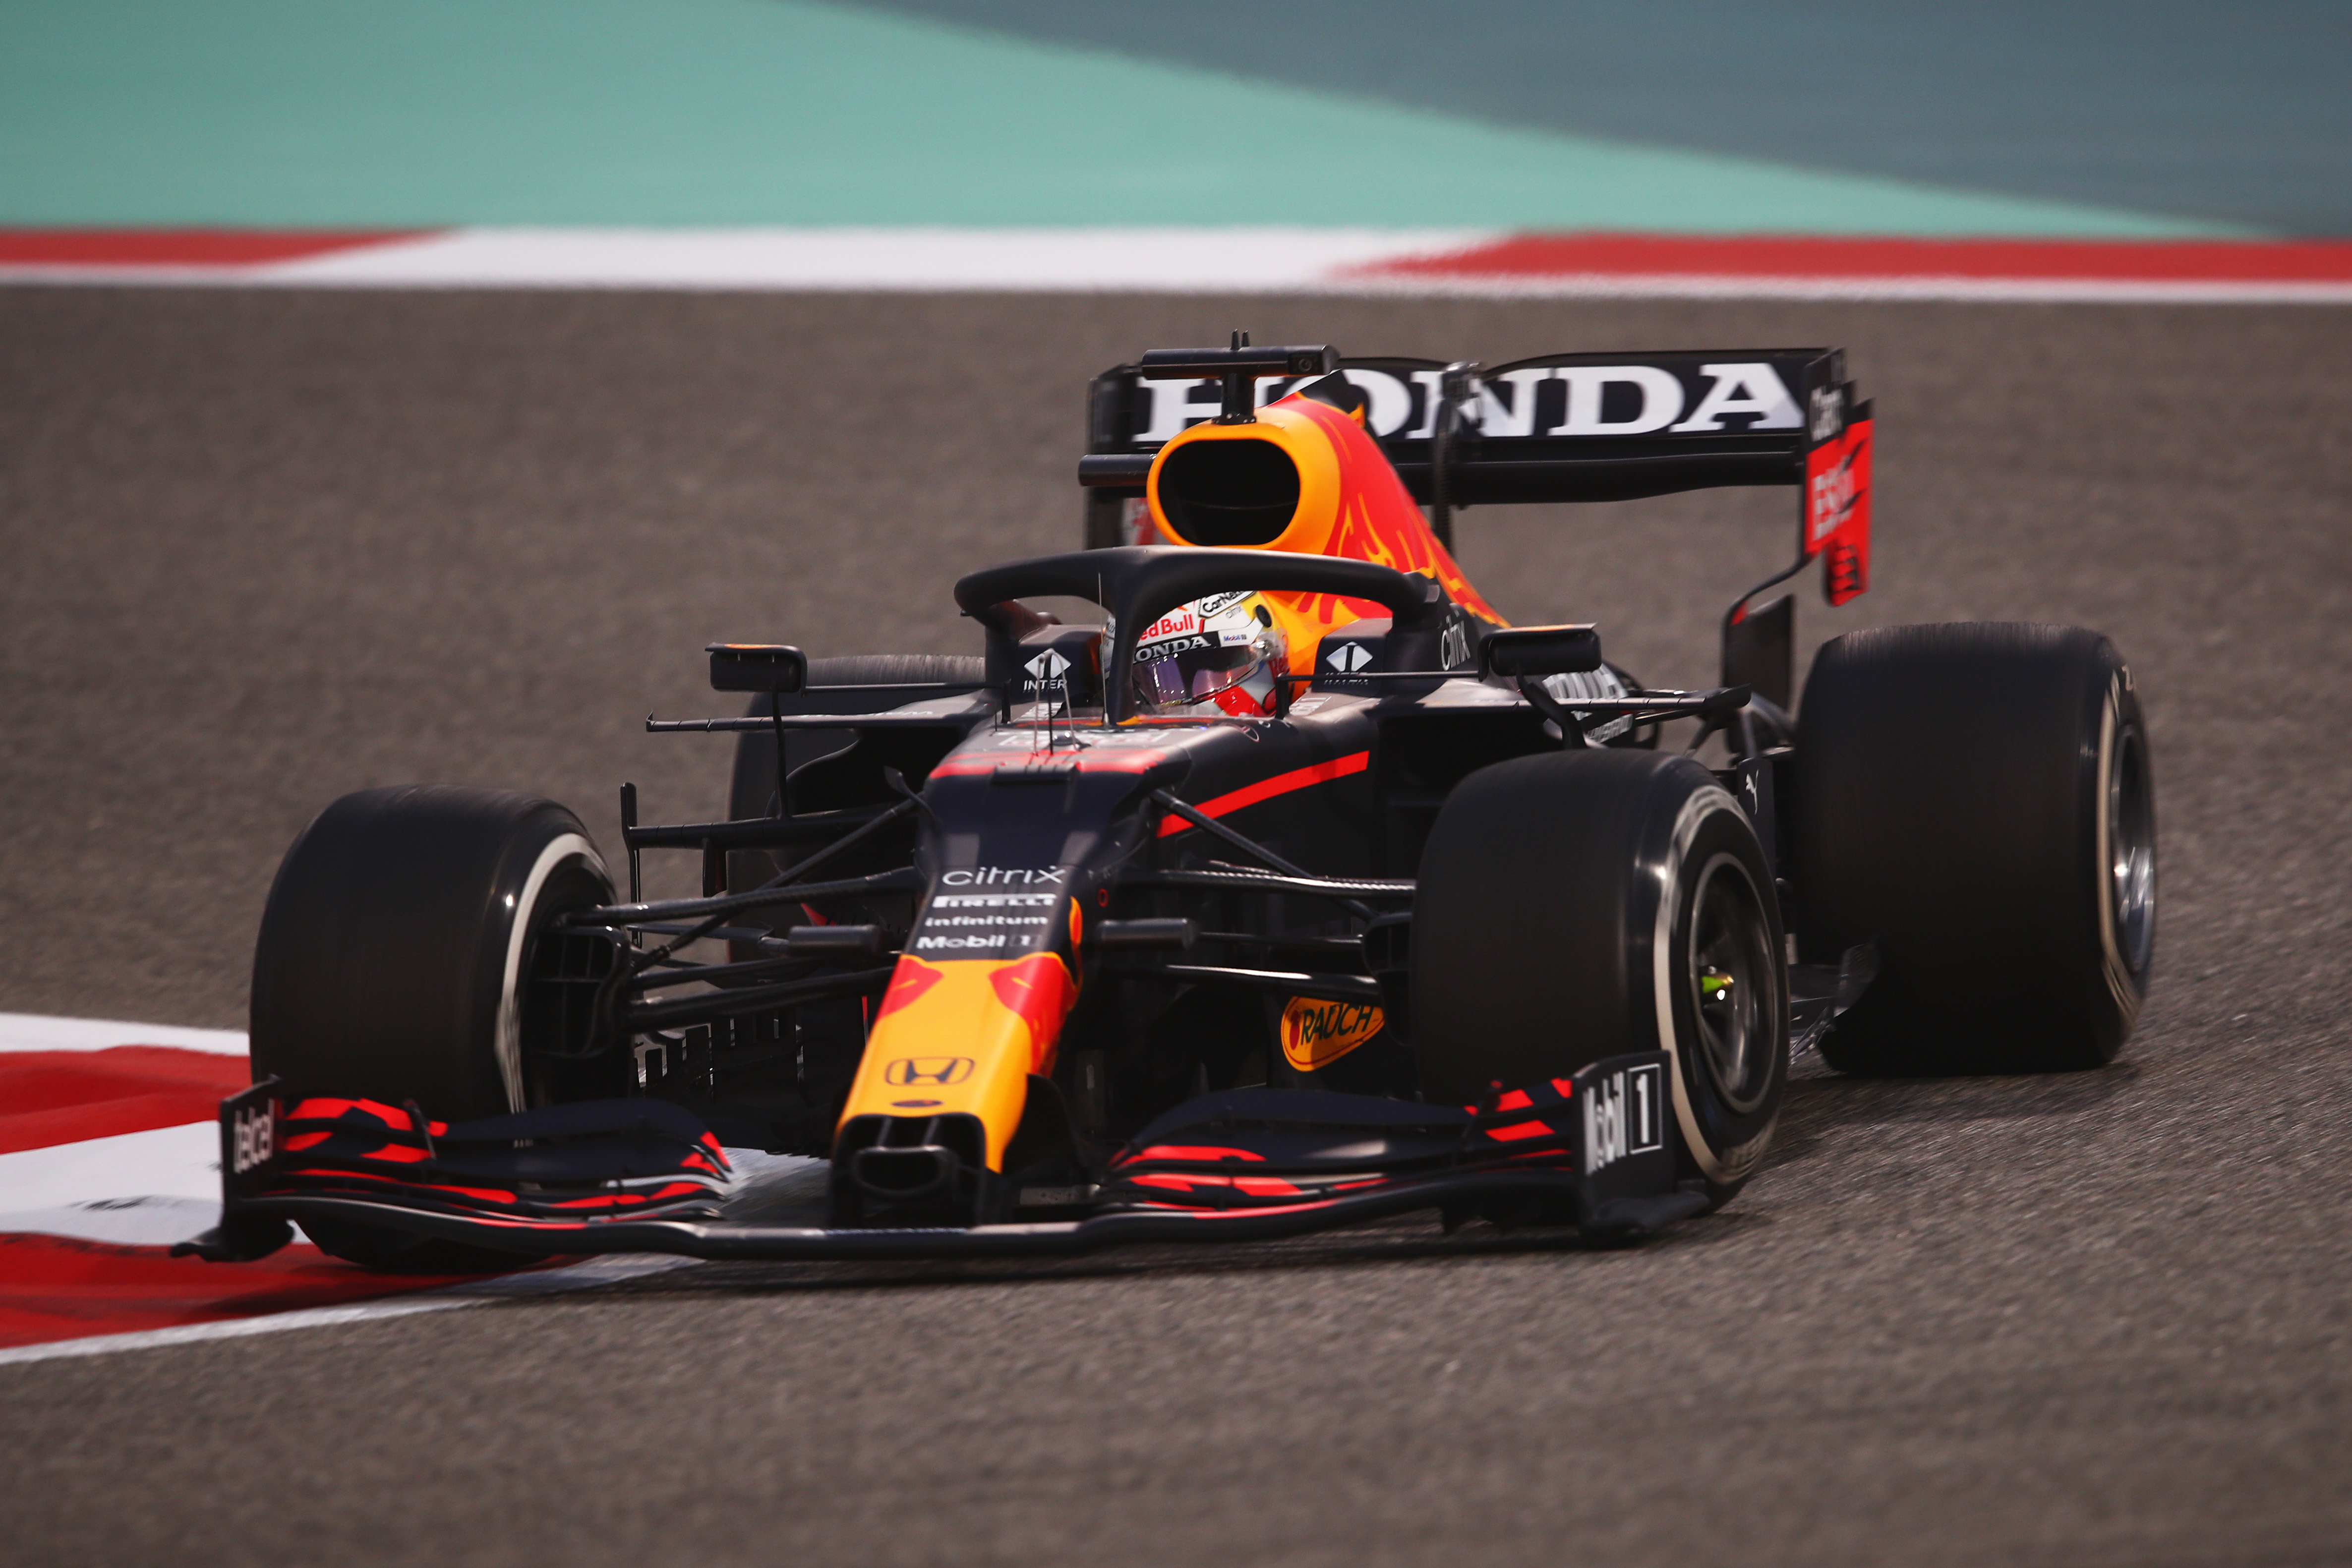 Max Verstappen tijdens de wintertest in Bahrein in de nieuwe Red Bull RB16B (Bron: Getty Images / Red Bull Content Pool)